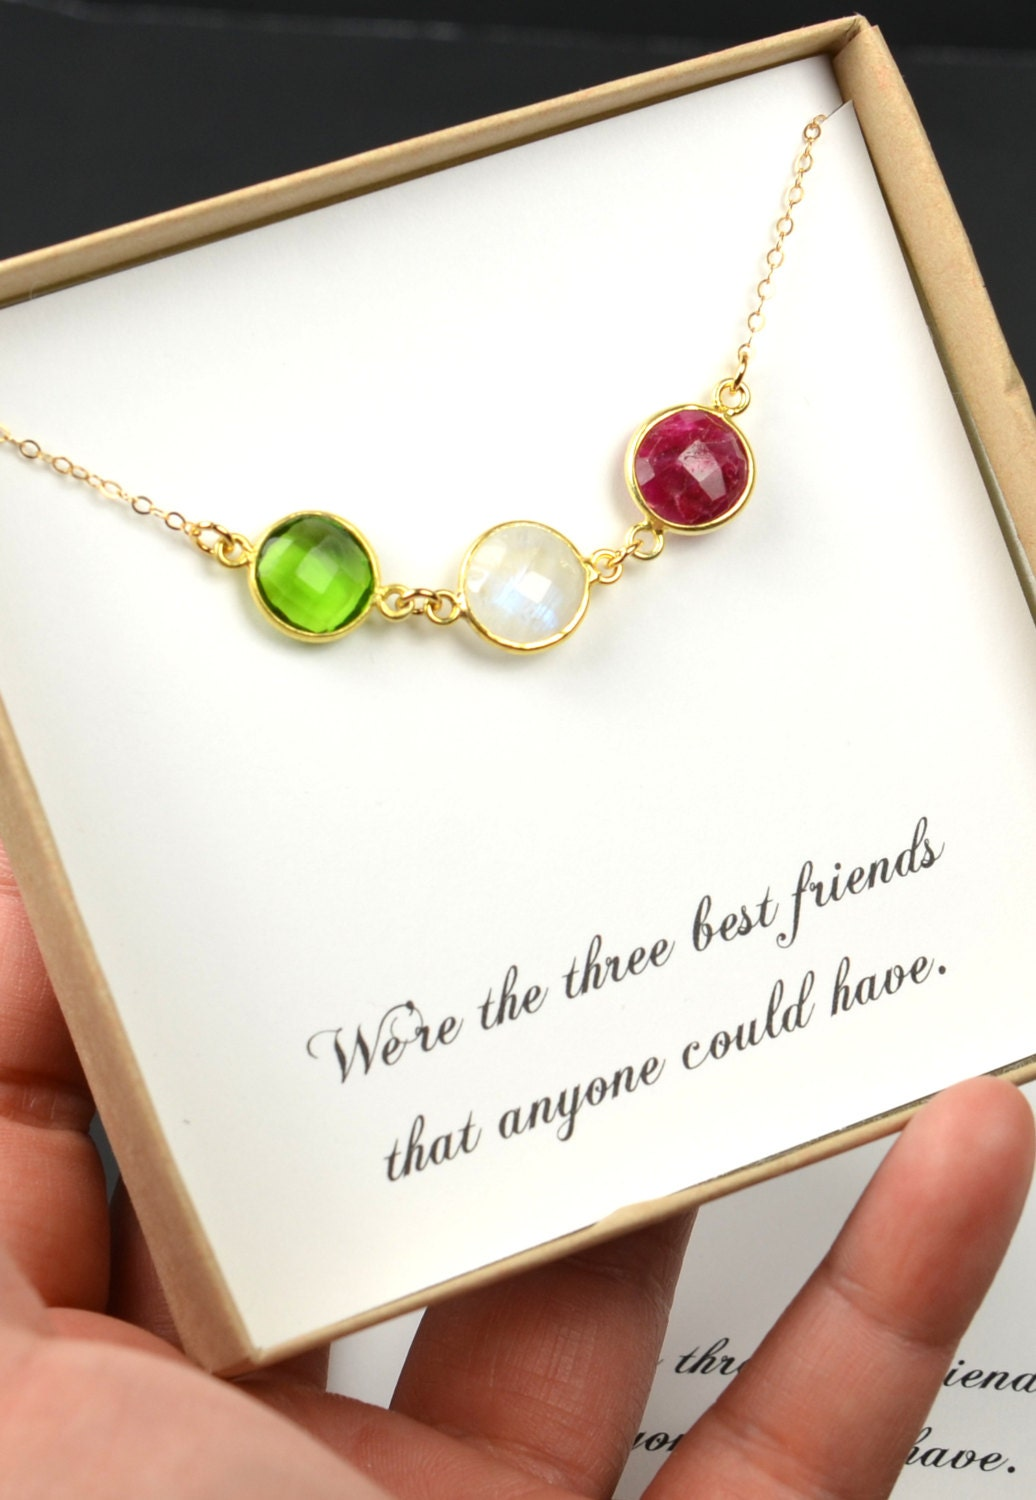 Best Friend Gifts Friendship Bracelet Necklace Personalized